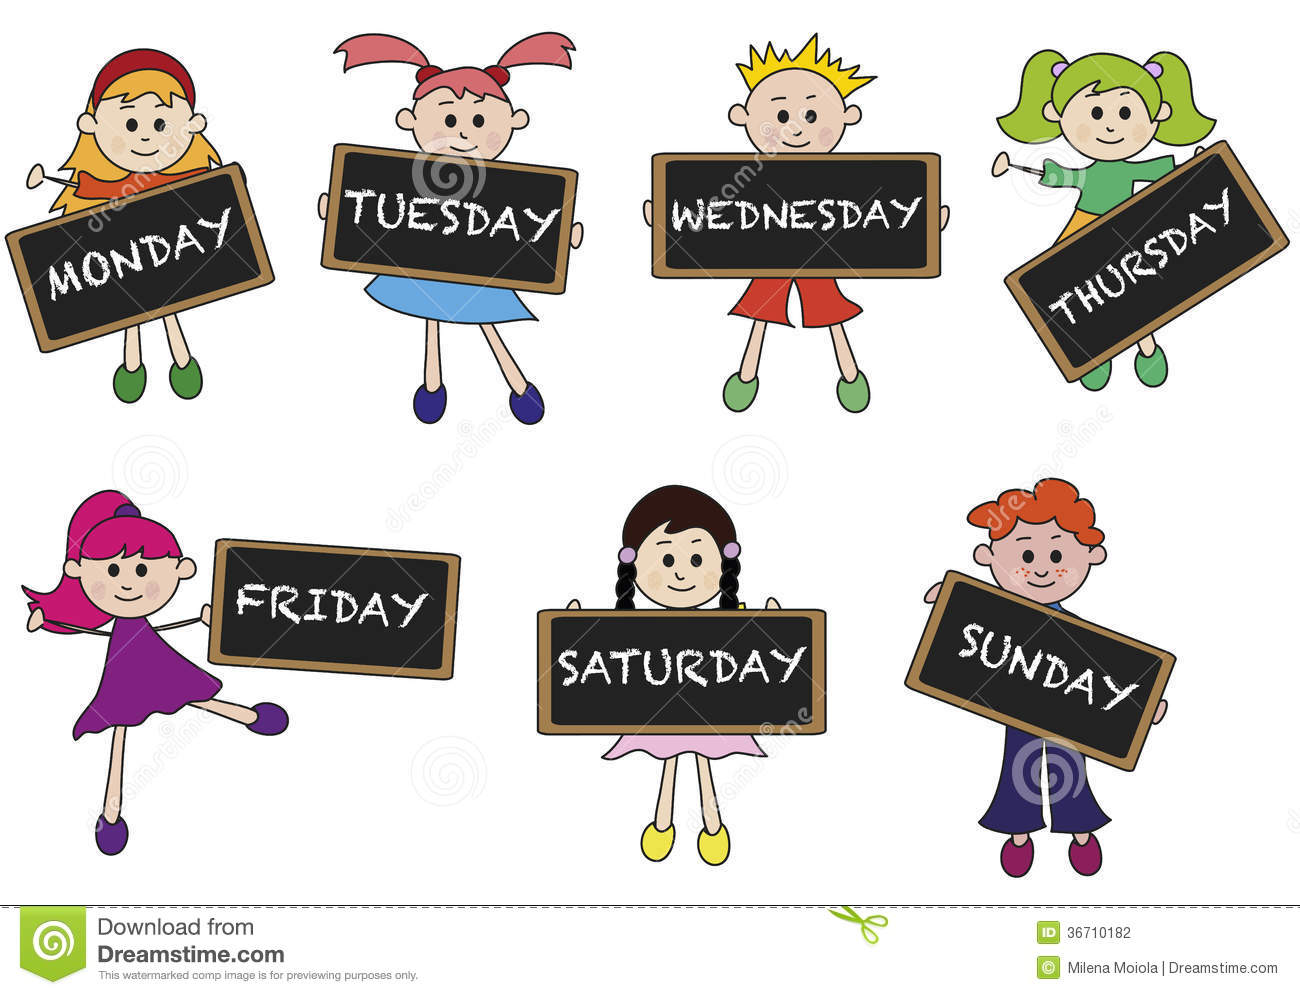 7 days of the week clipart image transparent download 42+ Days Of The Week Clip Art | ClipartLook image transparent download